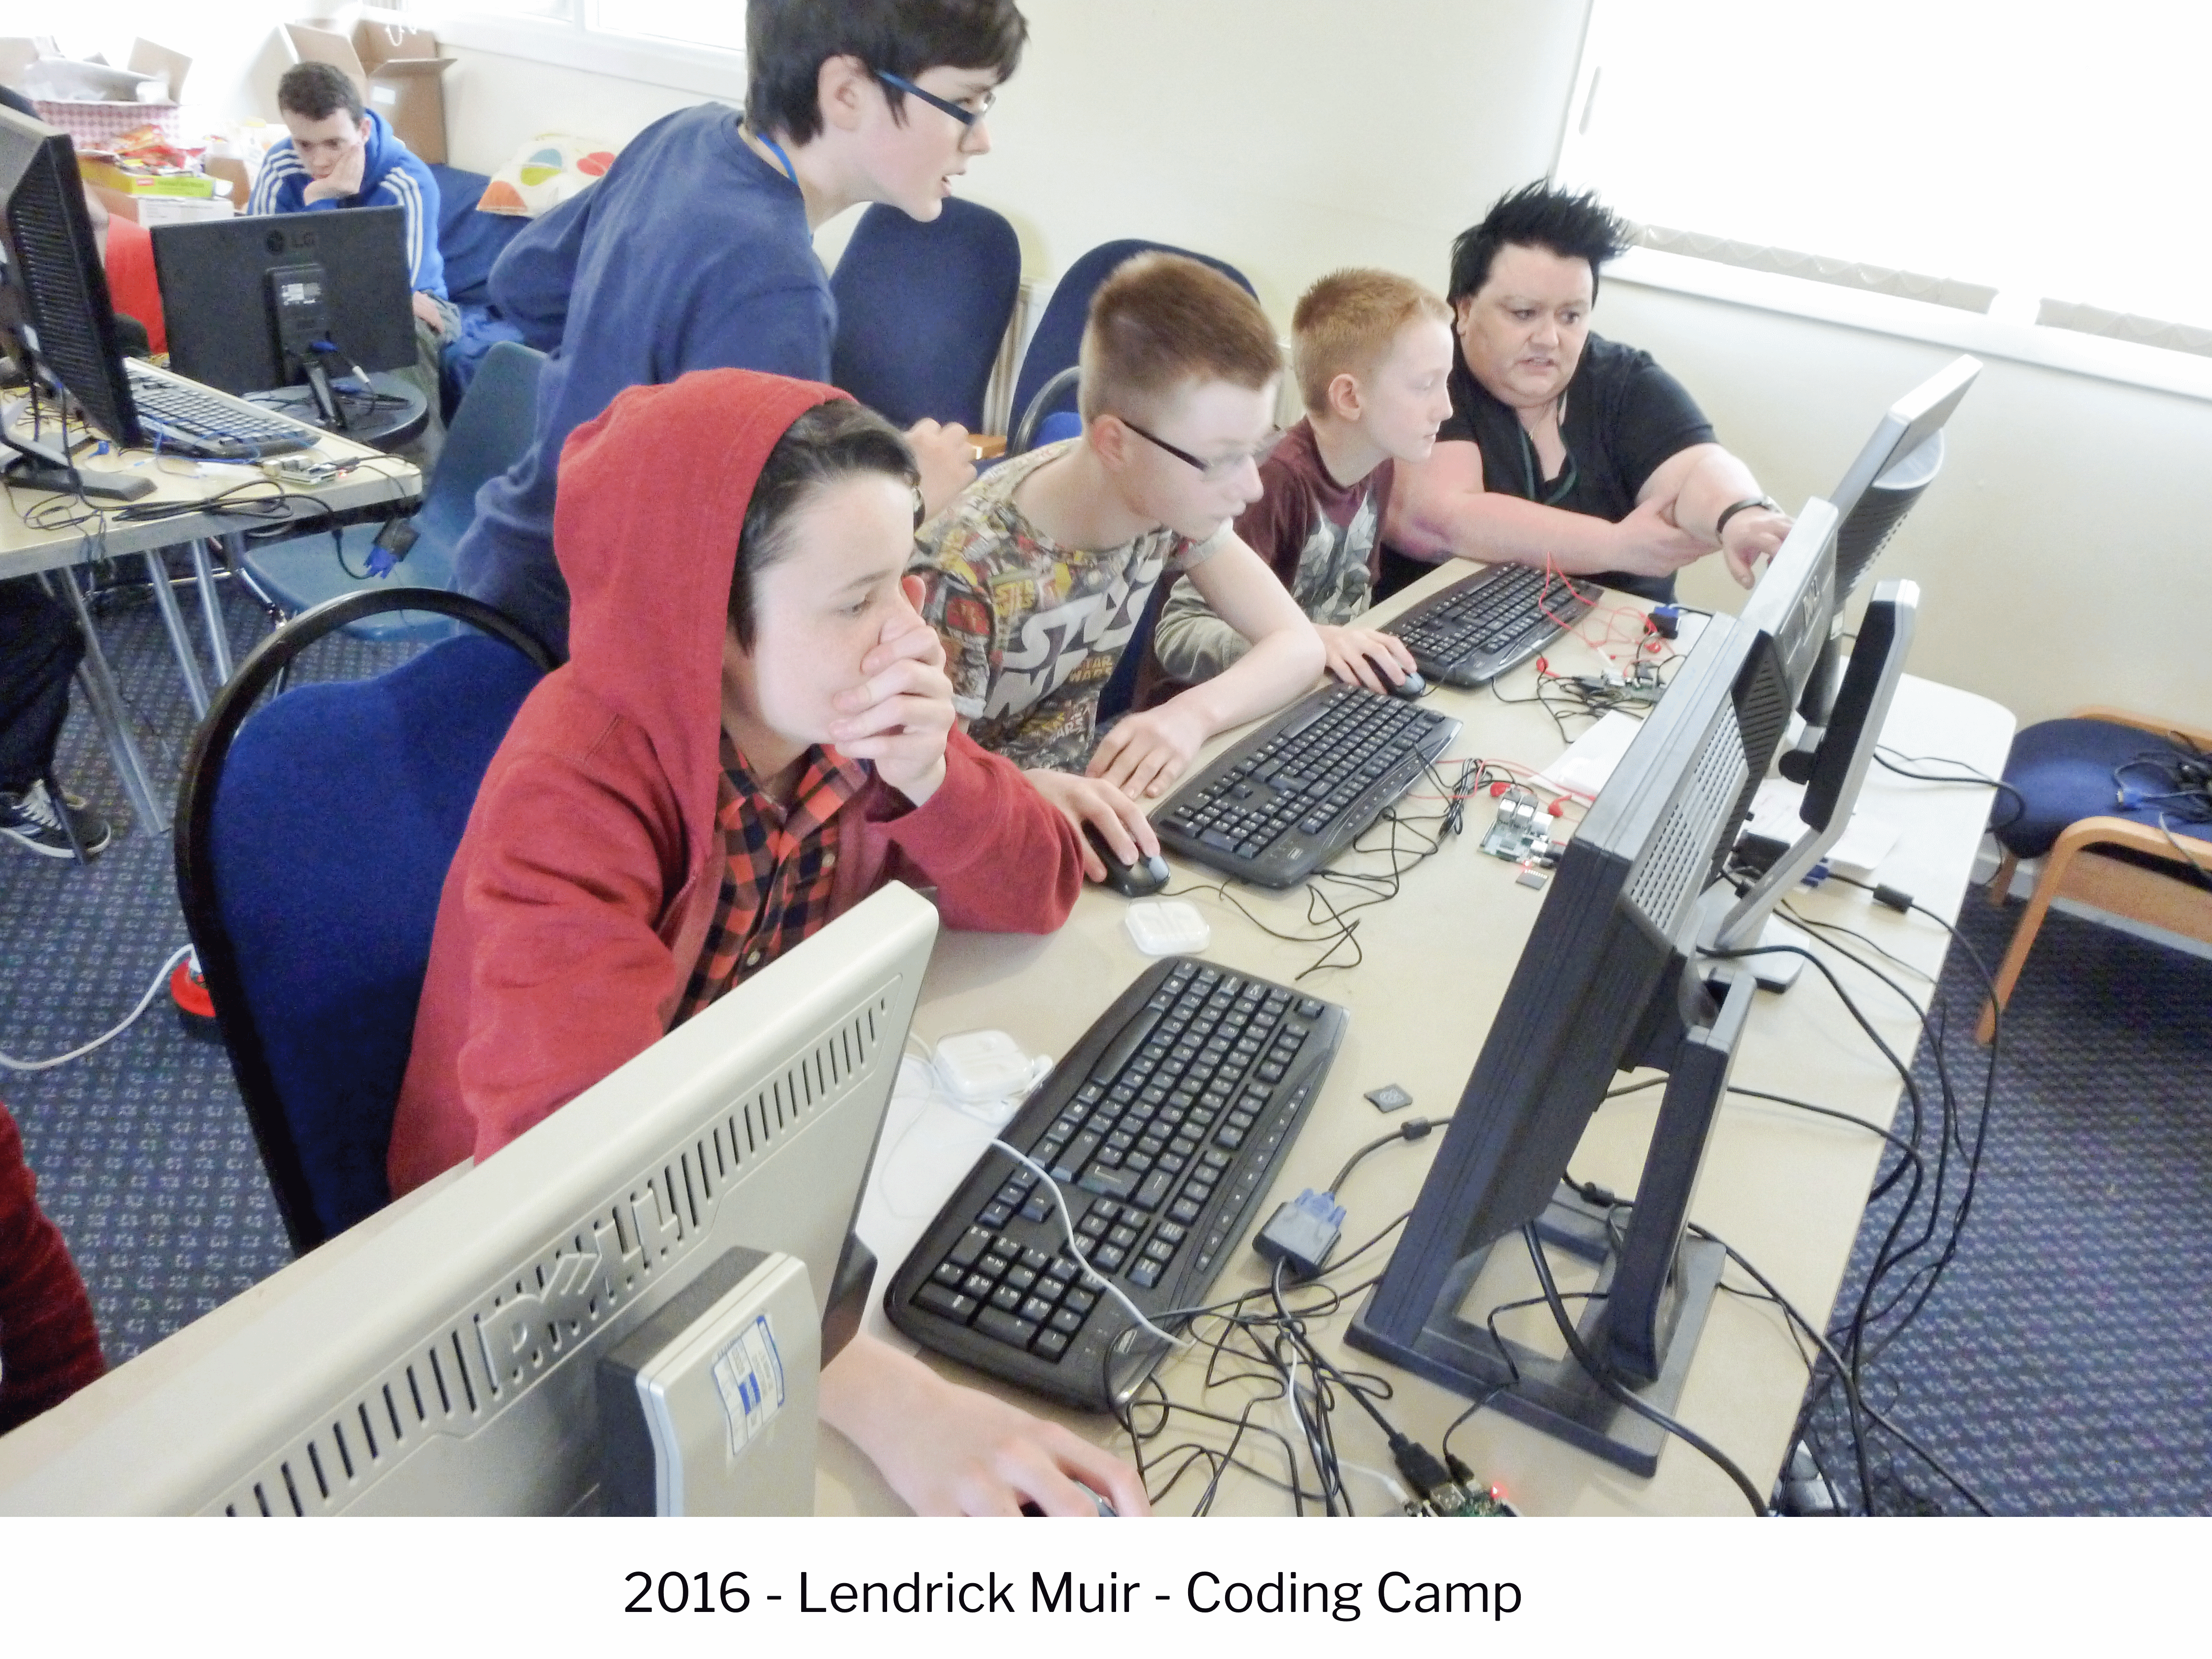 2016 - Coding Camp.png